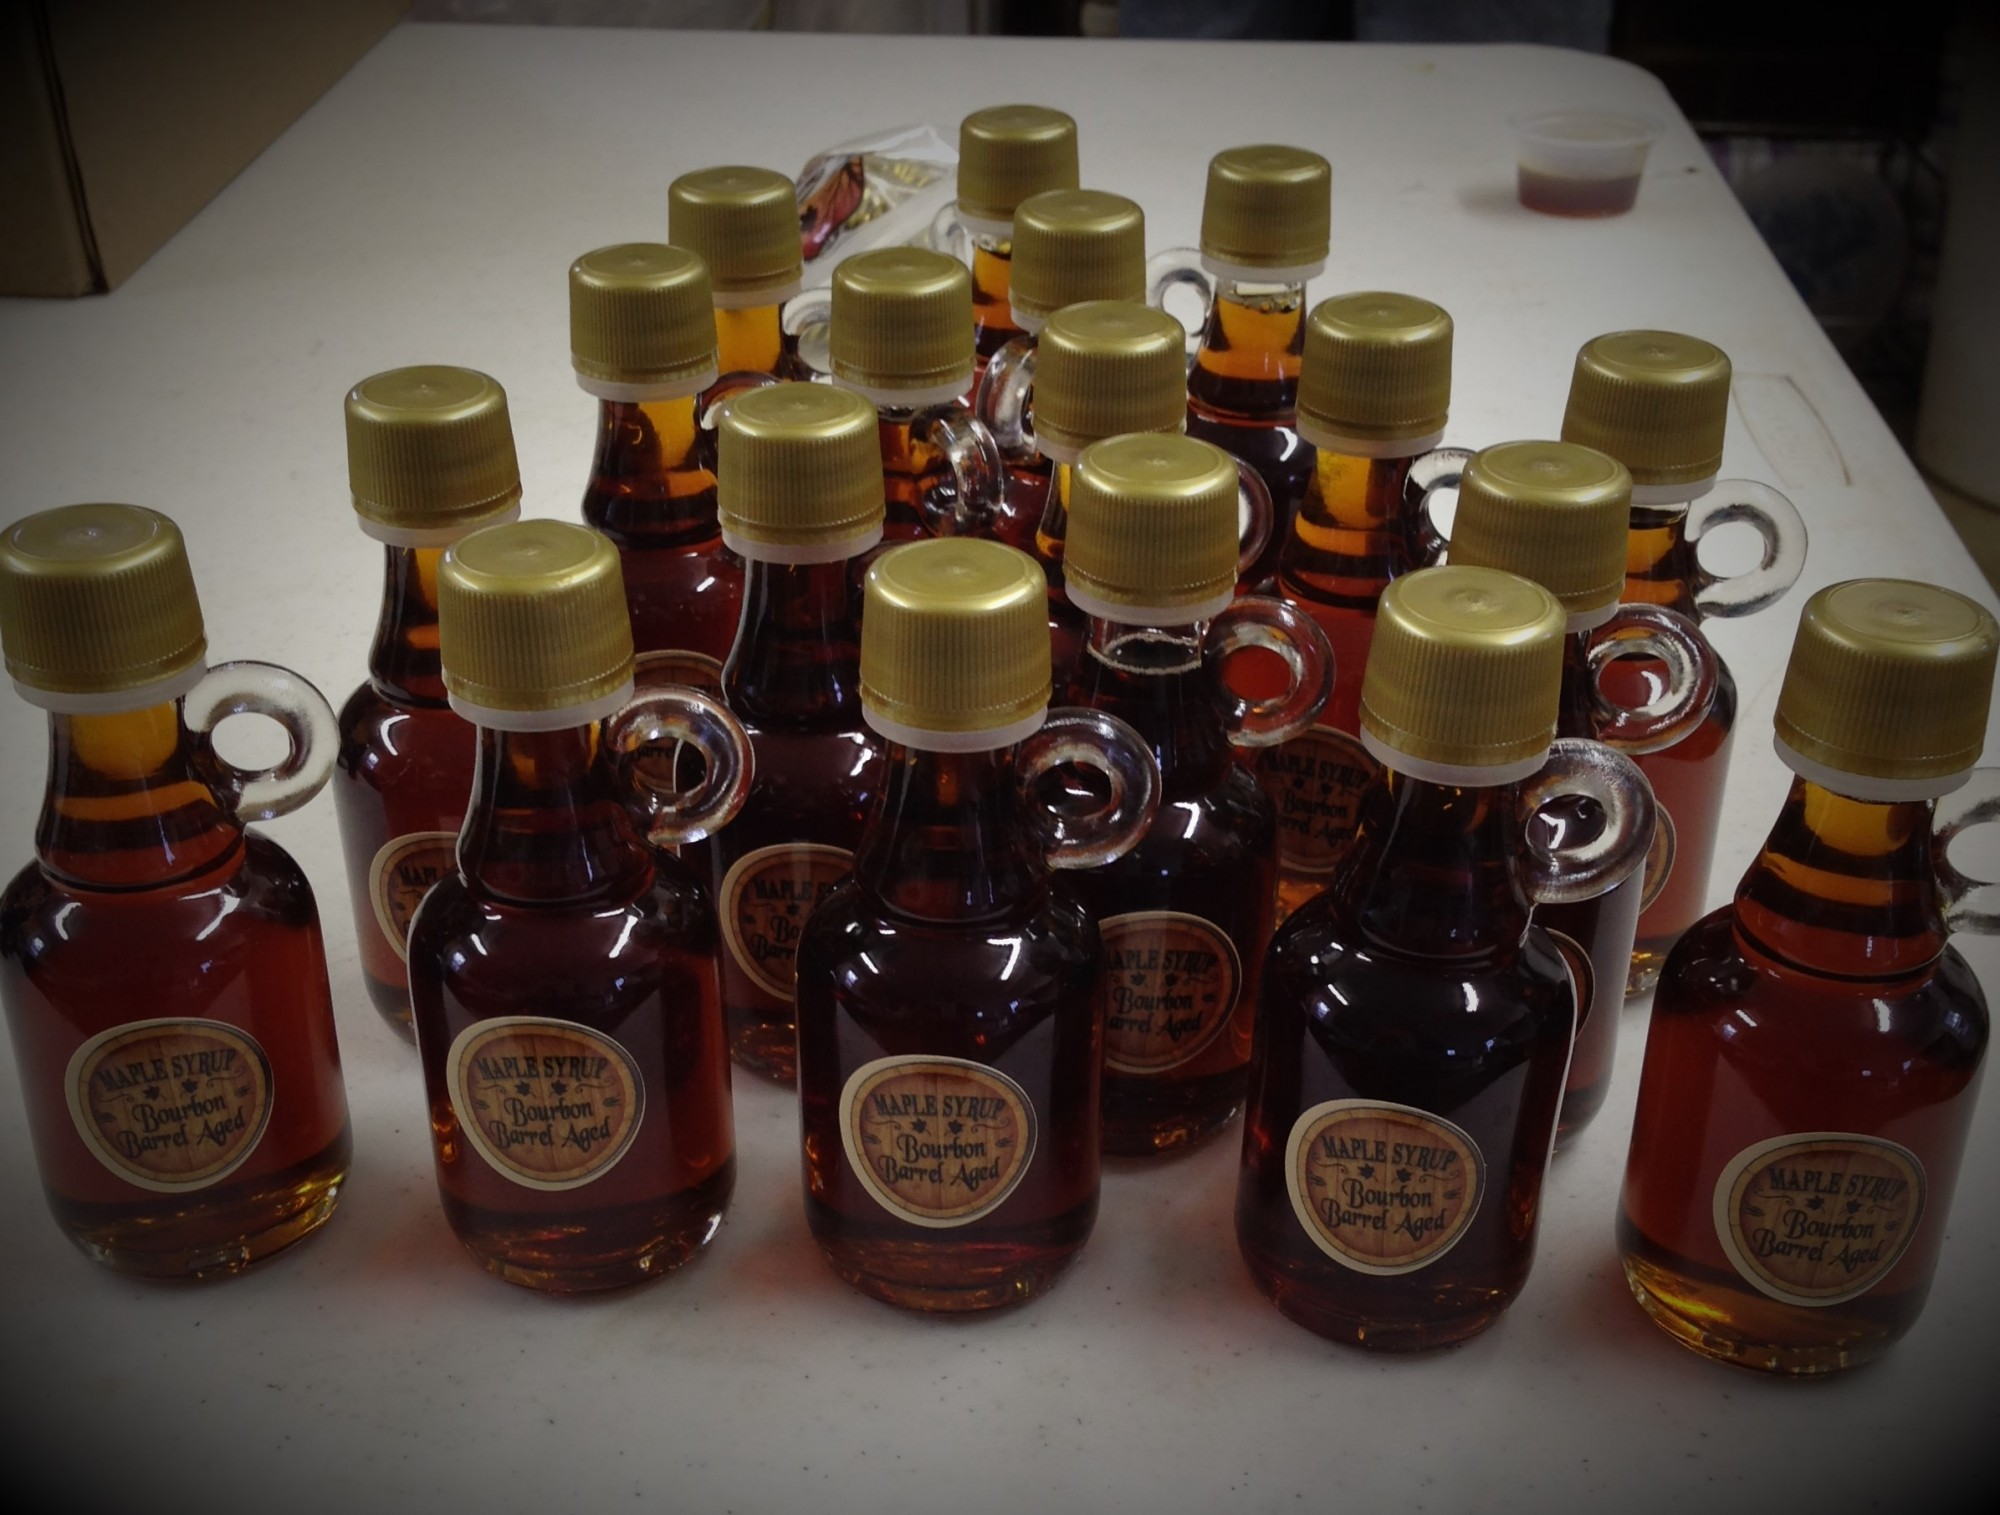 Bourbon Flavored Barrel Aged Maple Syrup 40 mL